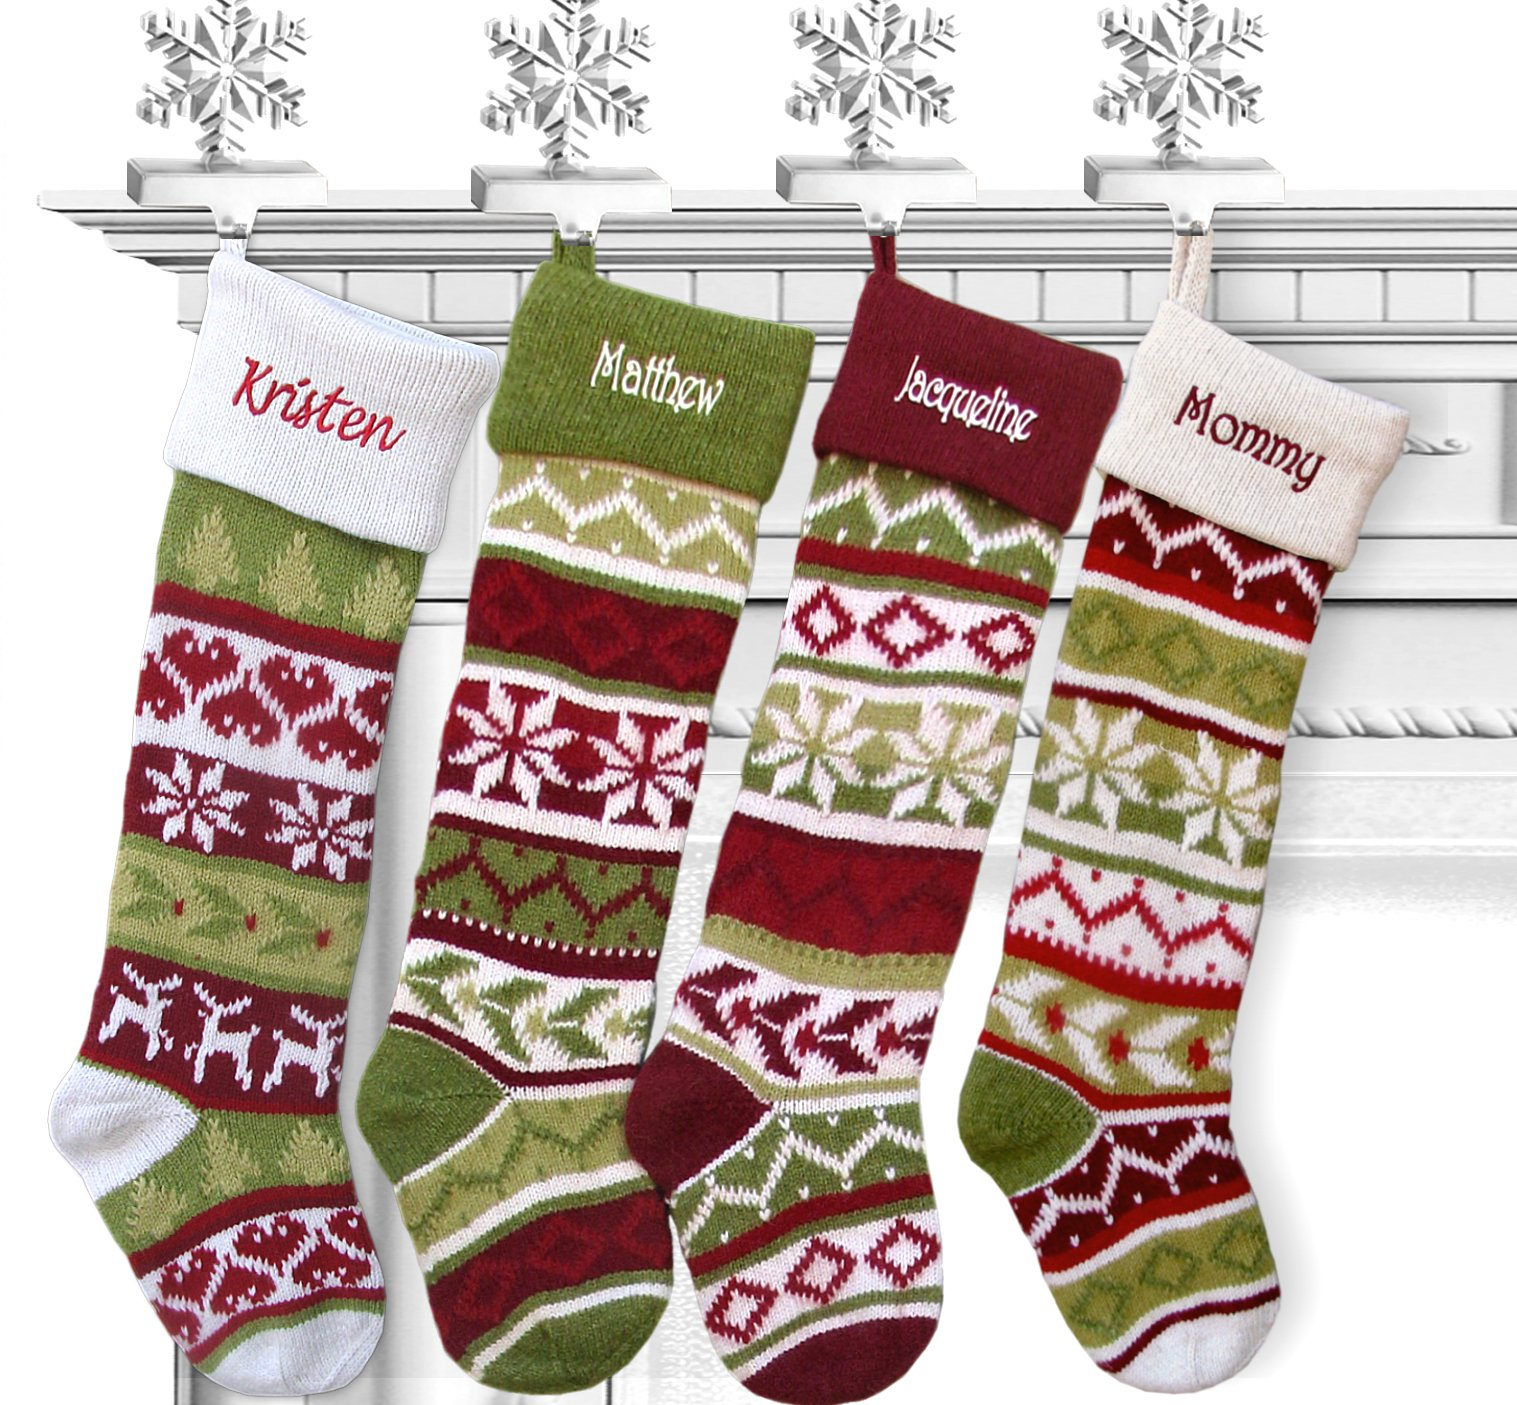 SET OF 4 Knit Christmas Stockings Fair Isle Design 28'' Personalized - CHOOSE YOUR DESIGNS - Embroidered with Your Names